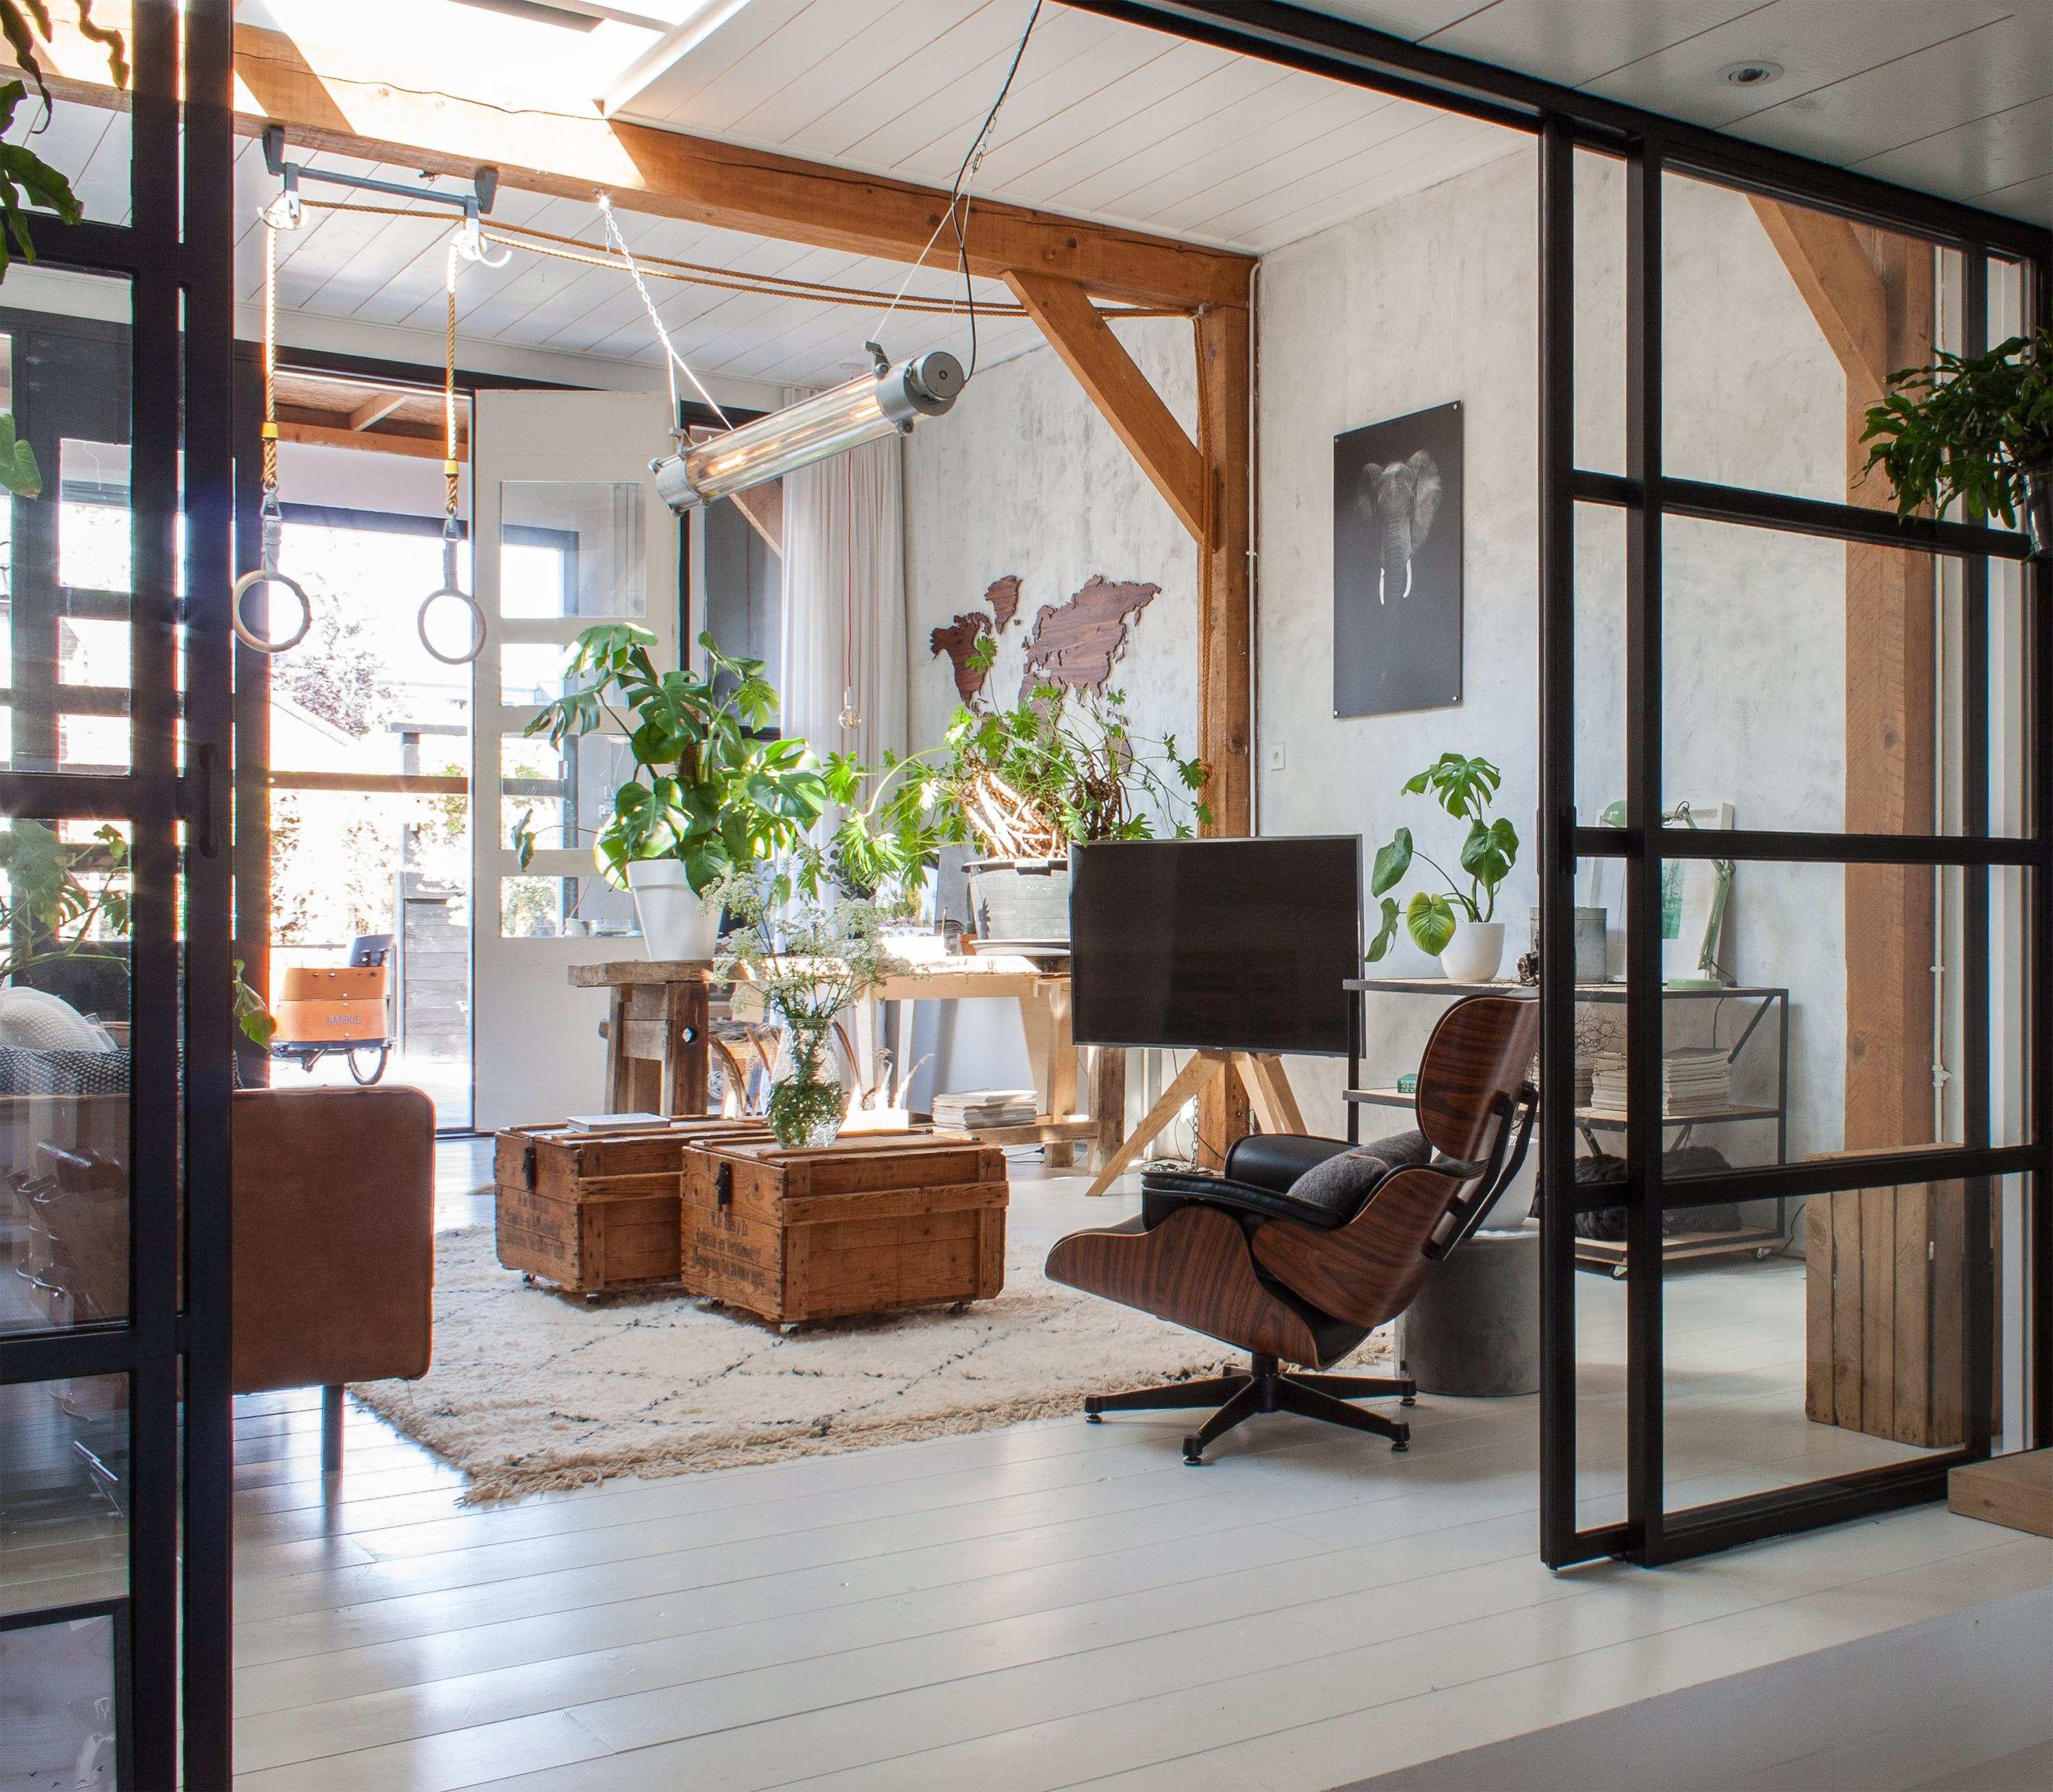 Why We Won't Stop Loving Industrial Interior Design in 2019 - Vinterior